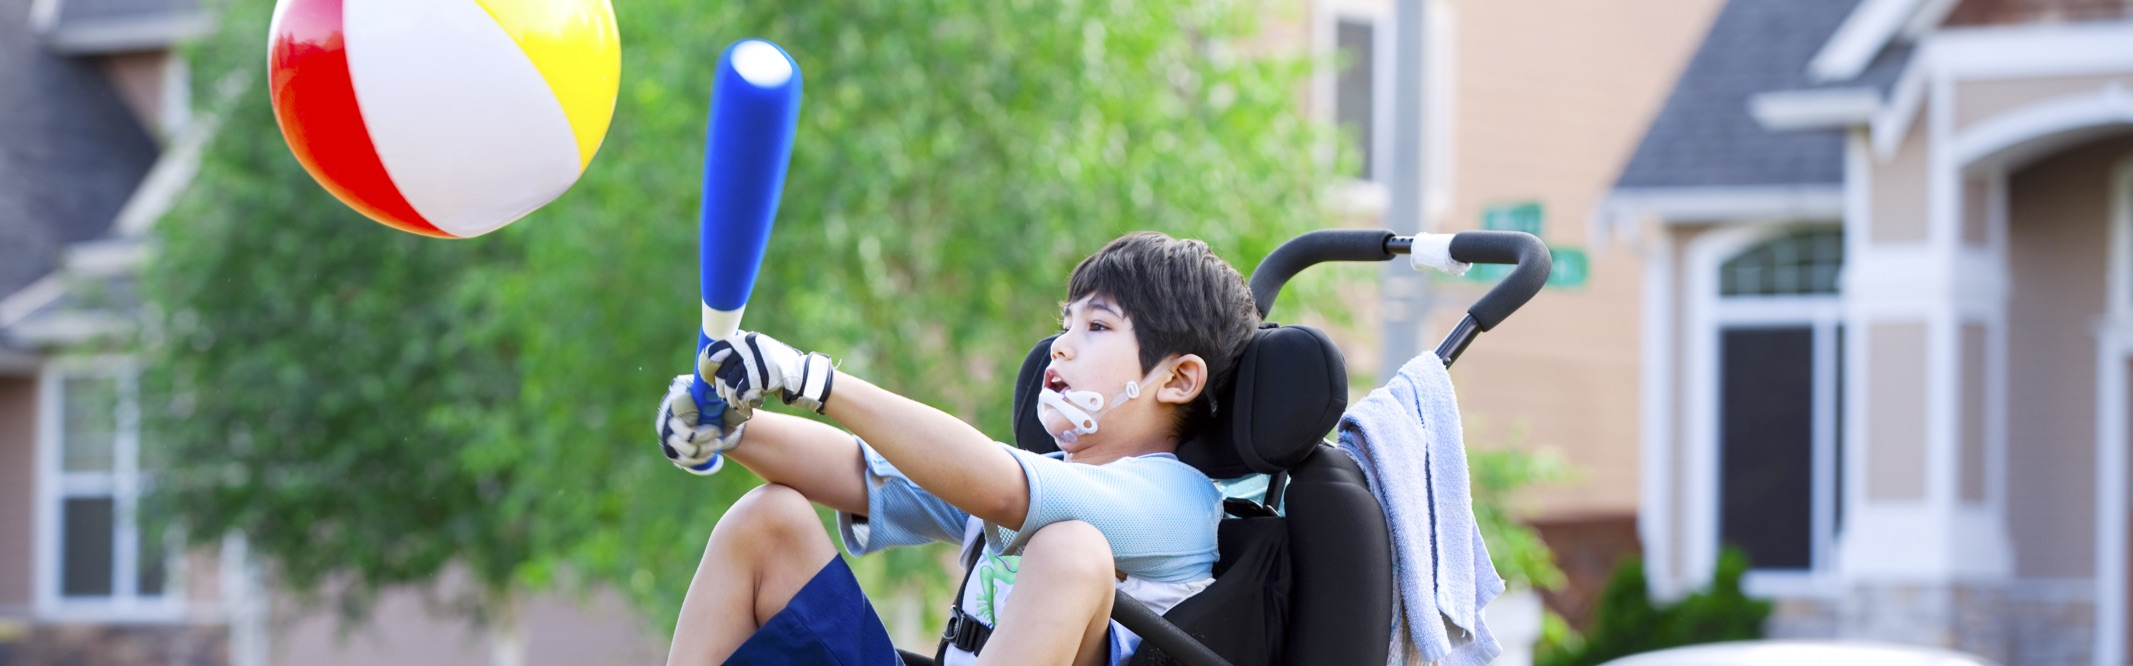 Boy in wheelchair with plastic bat and beach ball